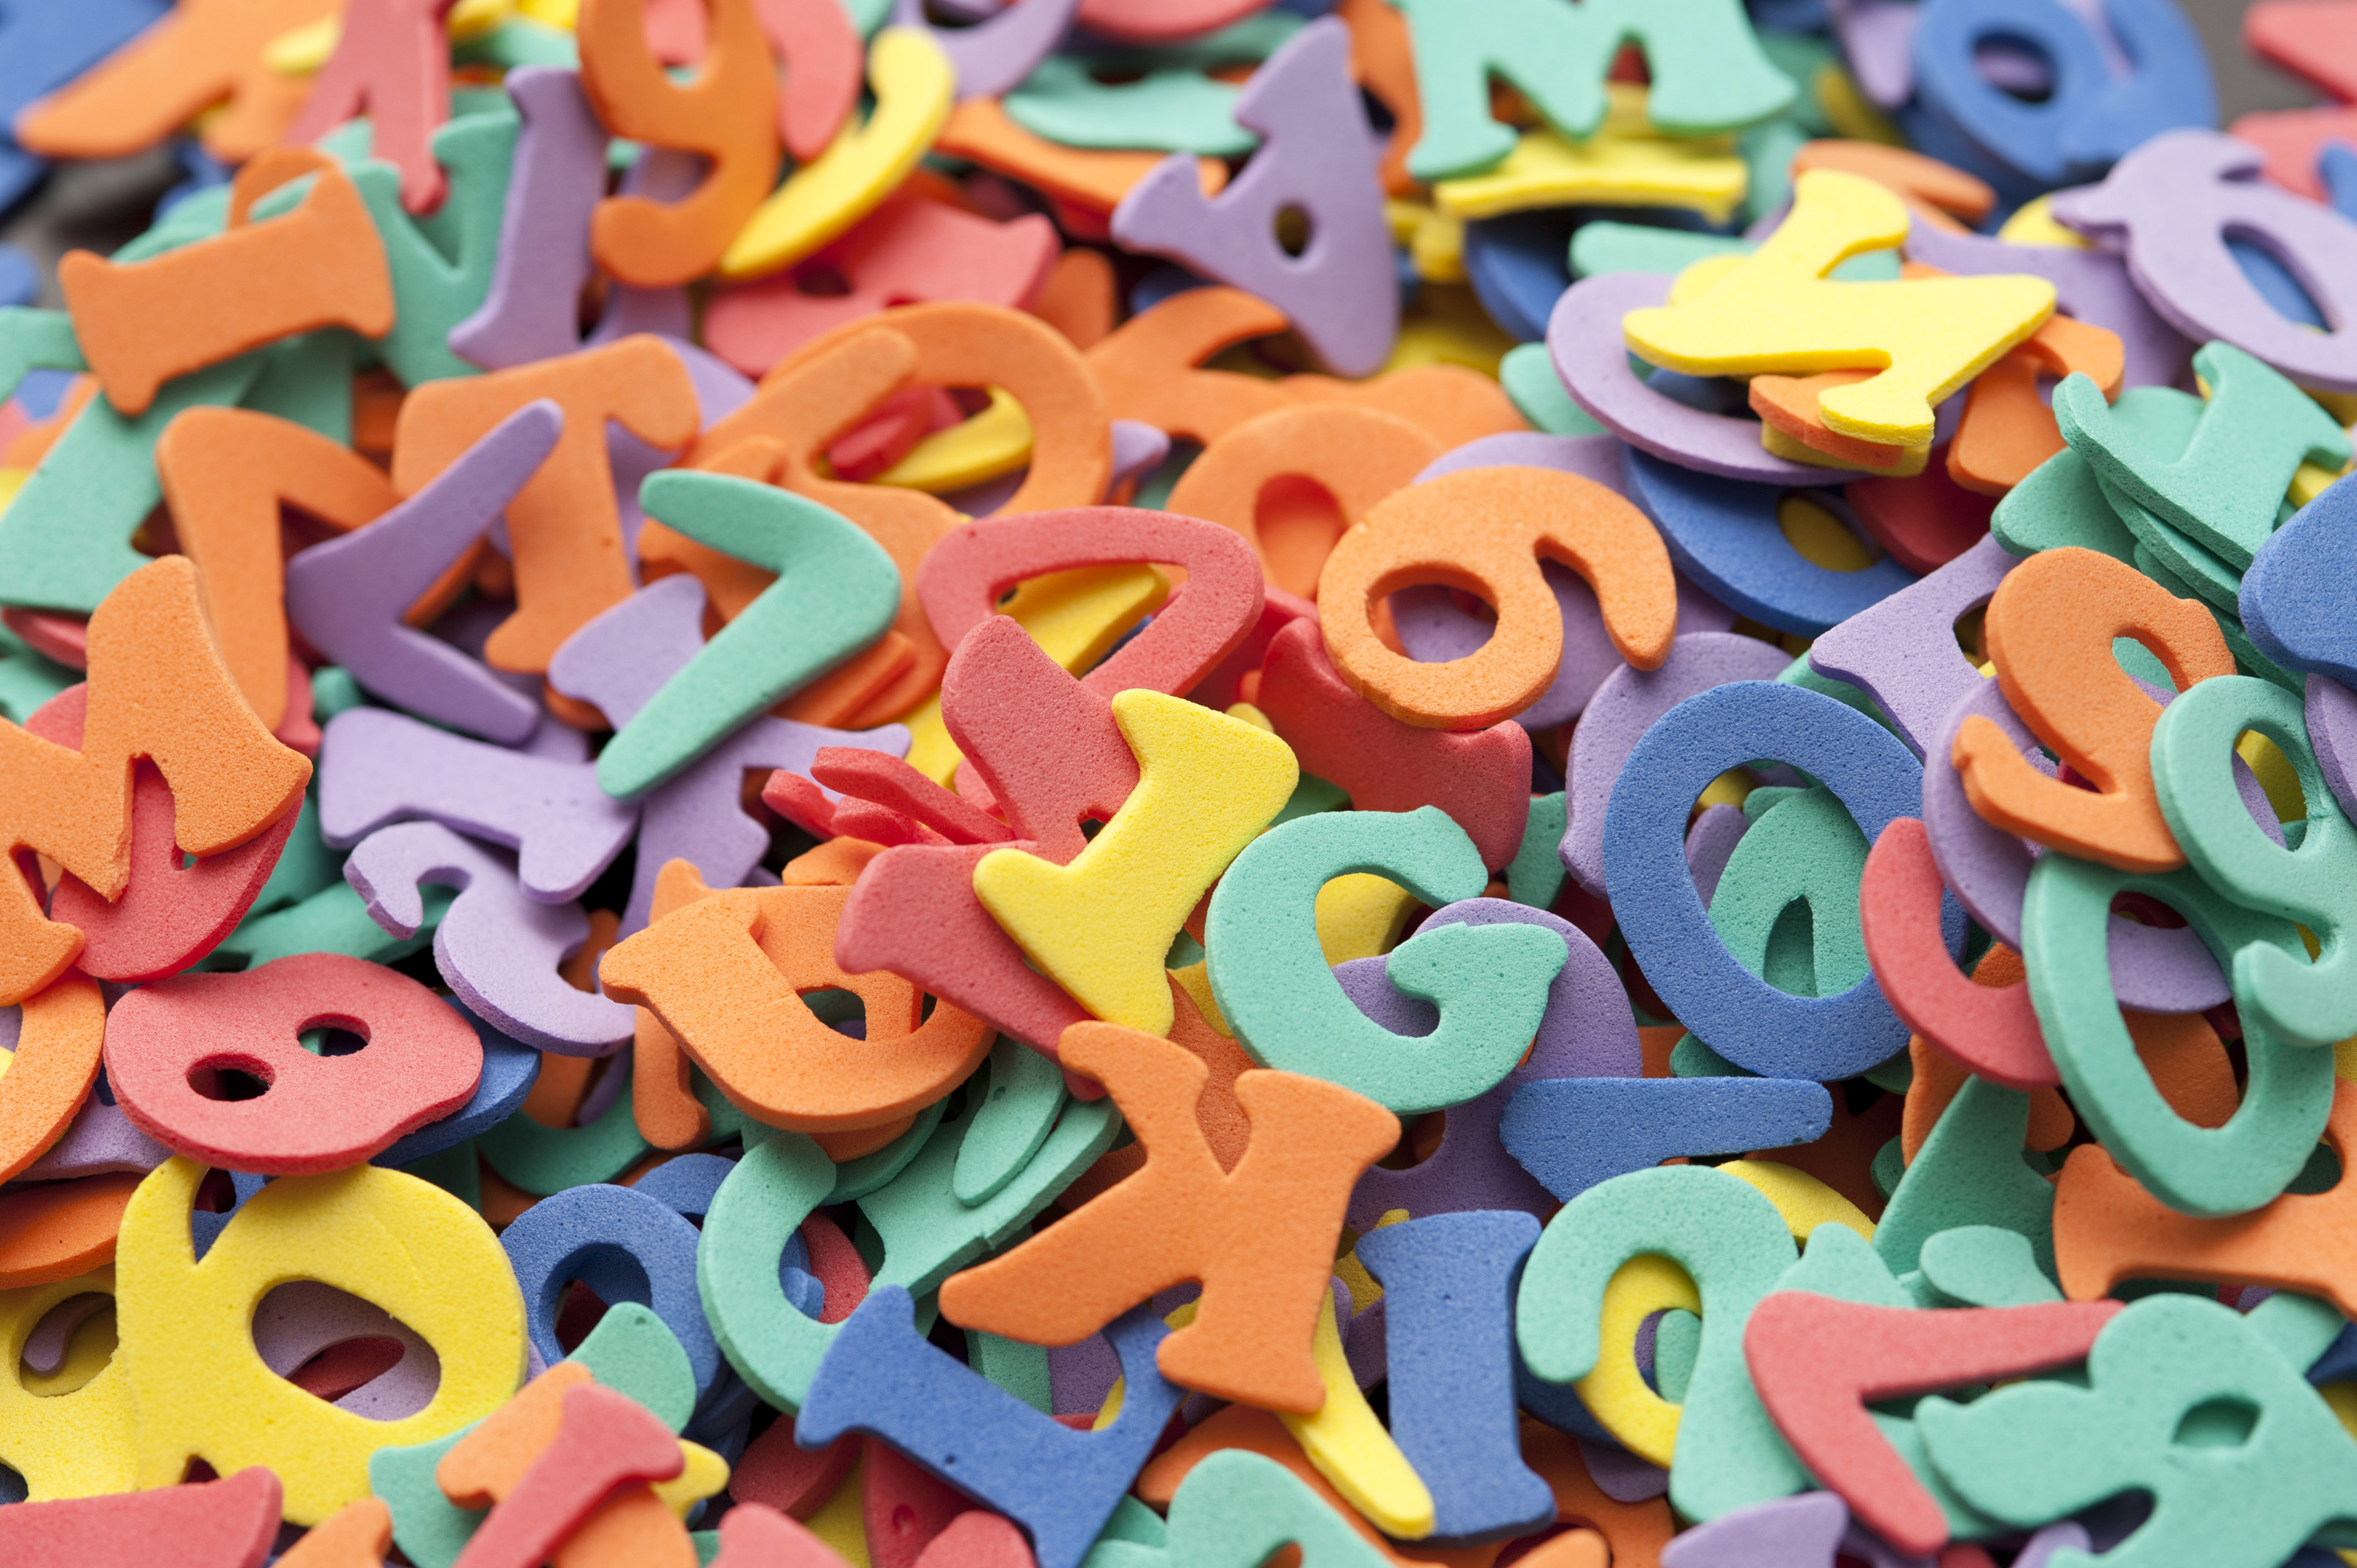 Free Stock Photo 7000 Letters And Numbers For Preschoolers